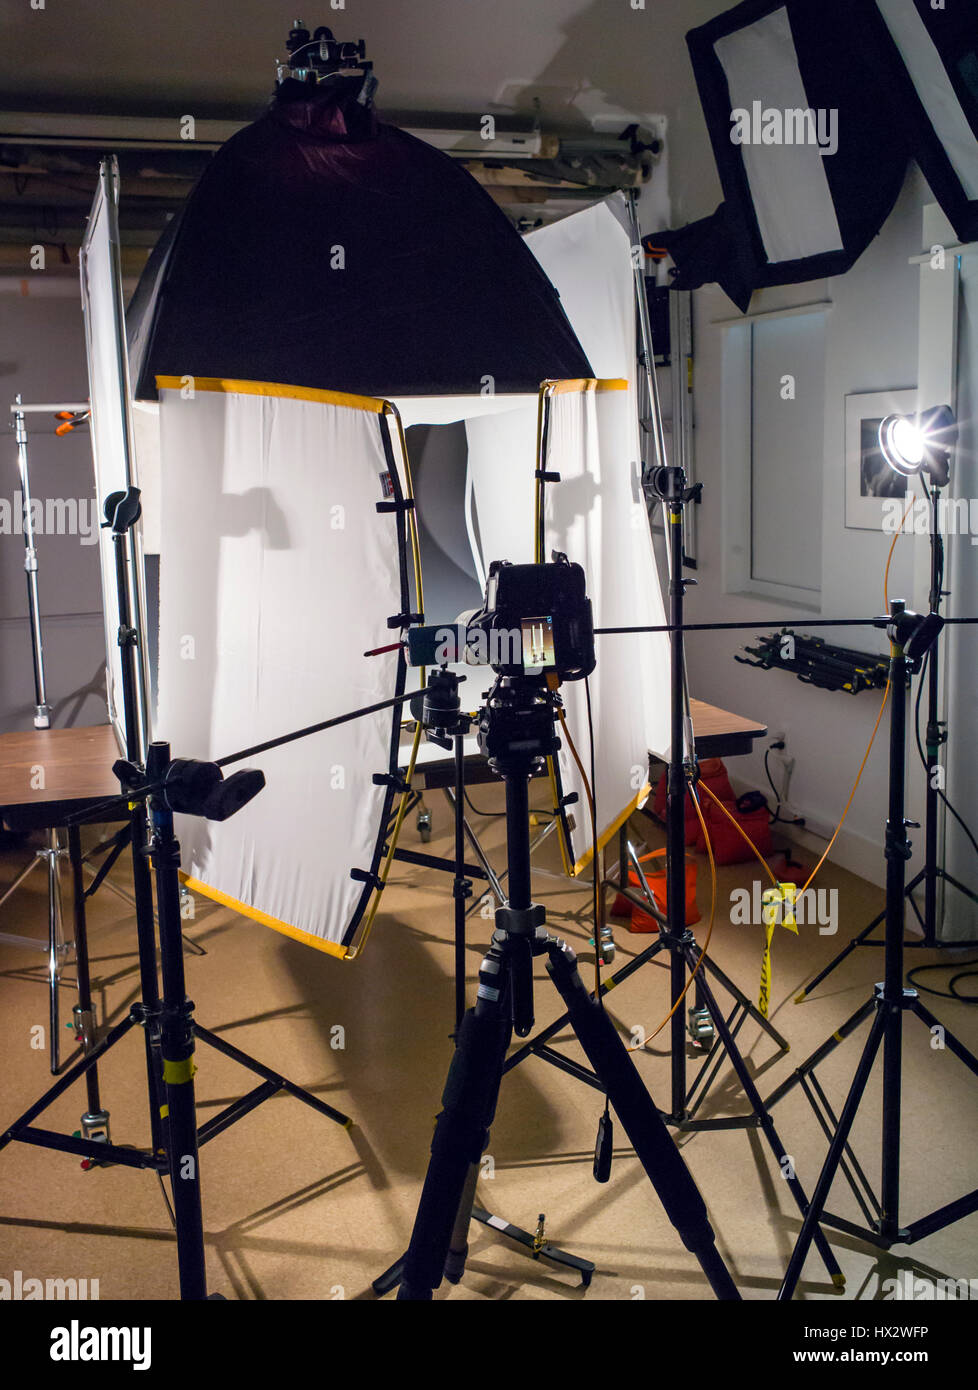 Commercial photography set including lighting background and grip commercial photography set including lighting background and grip gear to photograph custom silver steel tableware aloadofball Images